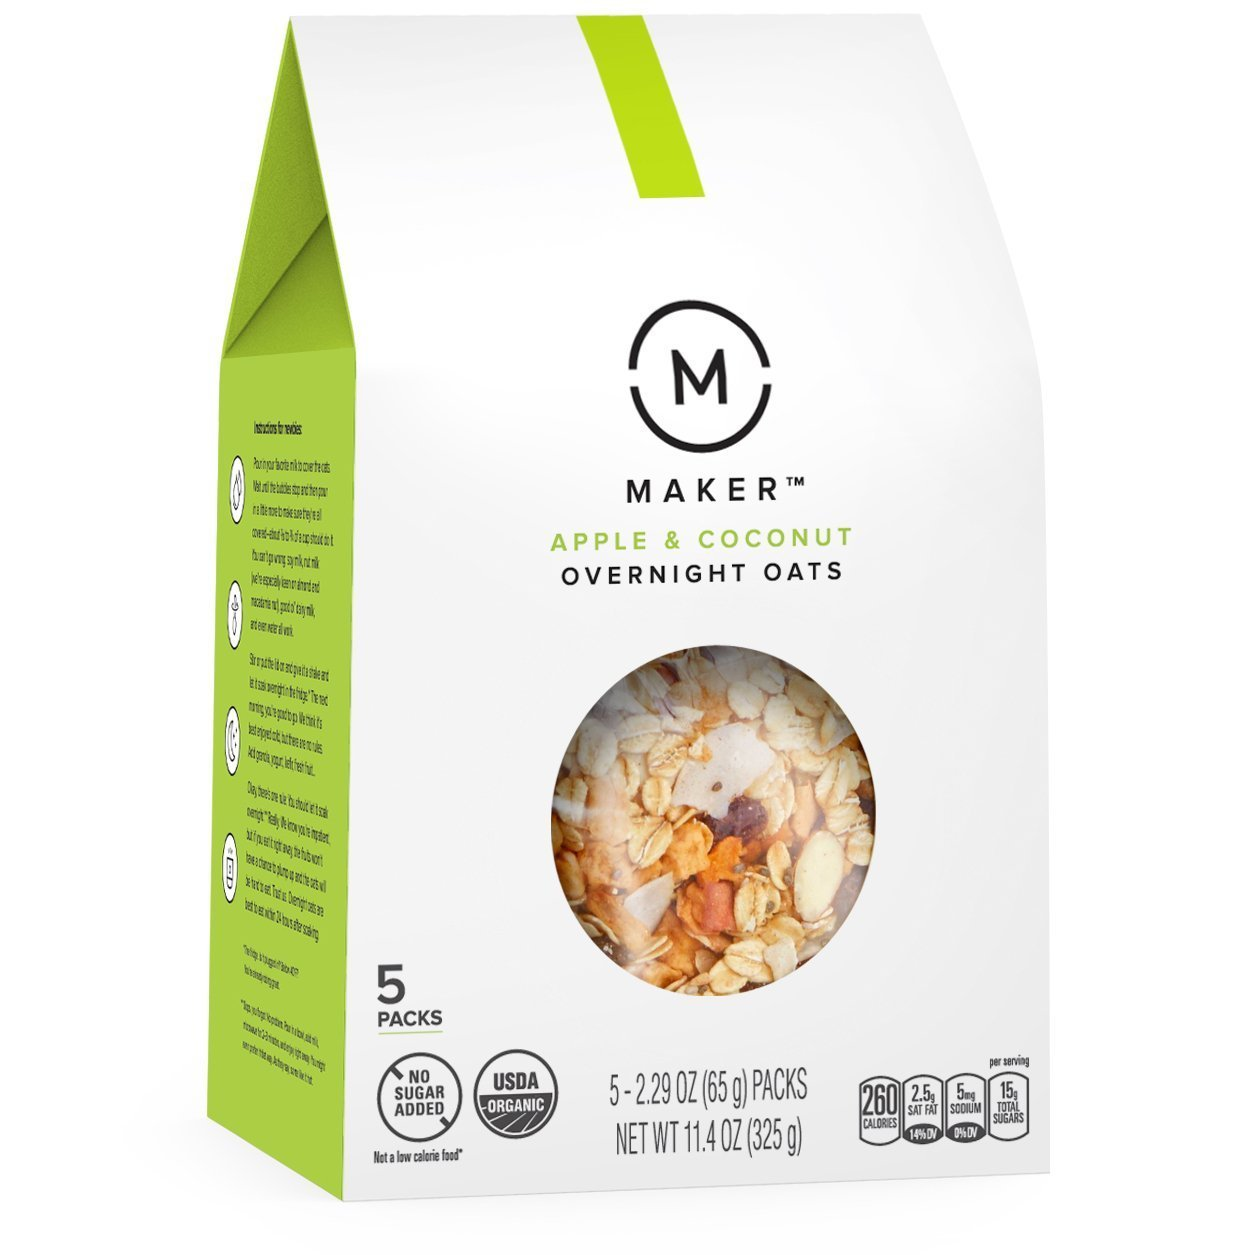 Maker Overnight Oats, Apple & Coconut, Organic, No Sugar Added, 5 Count, 2.29 oz Packs